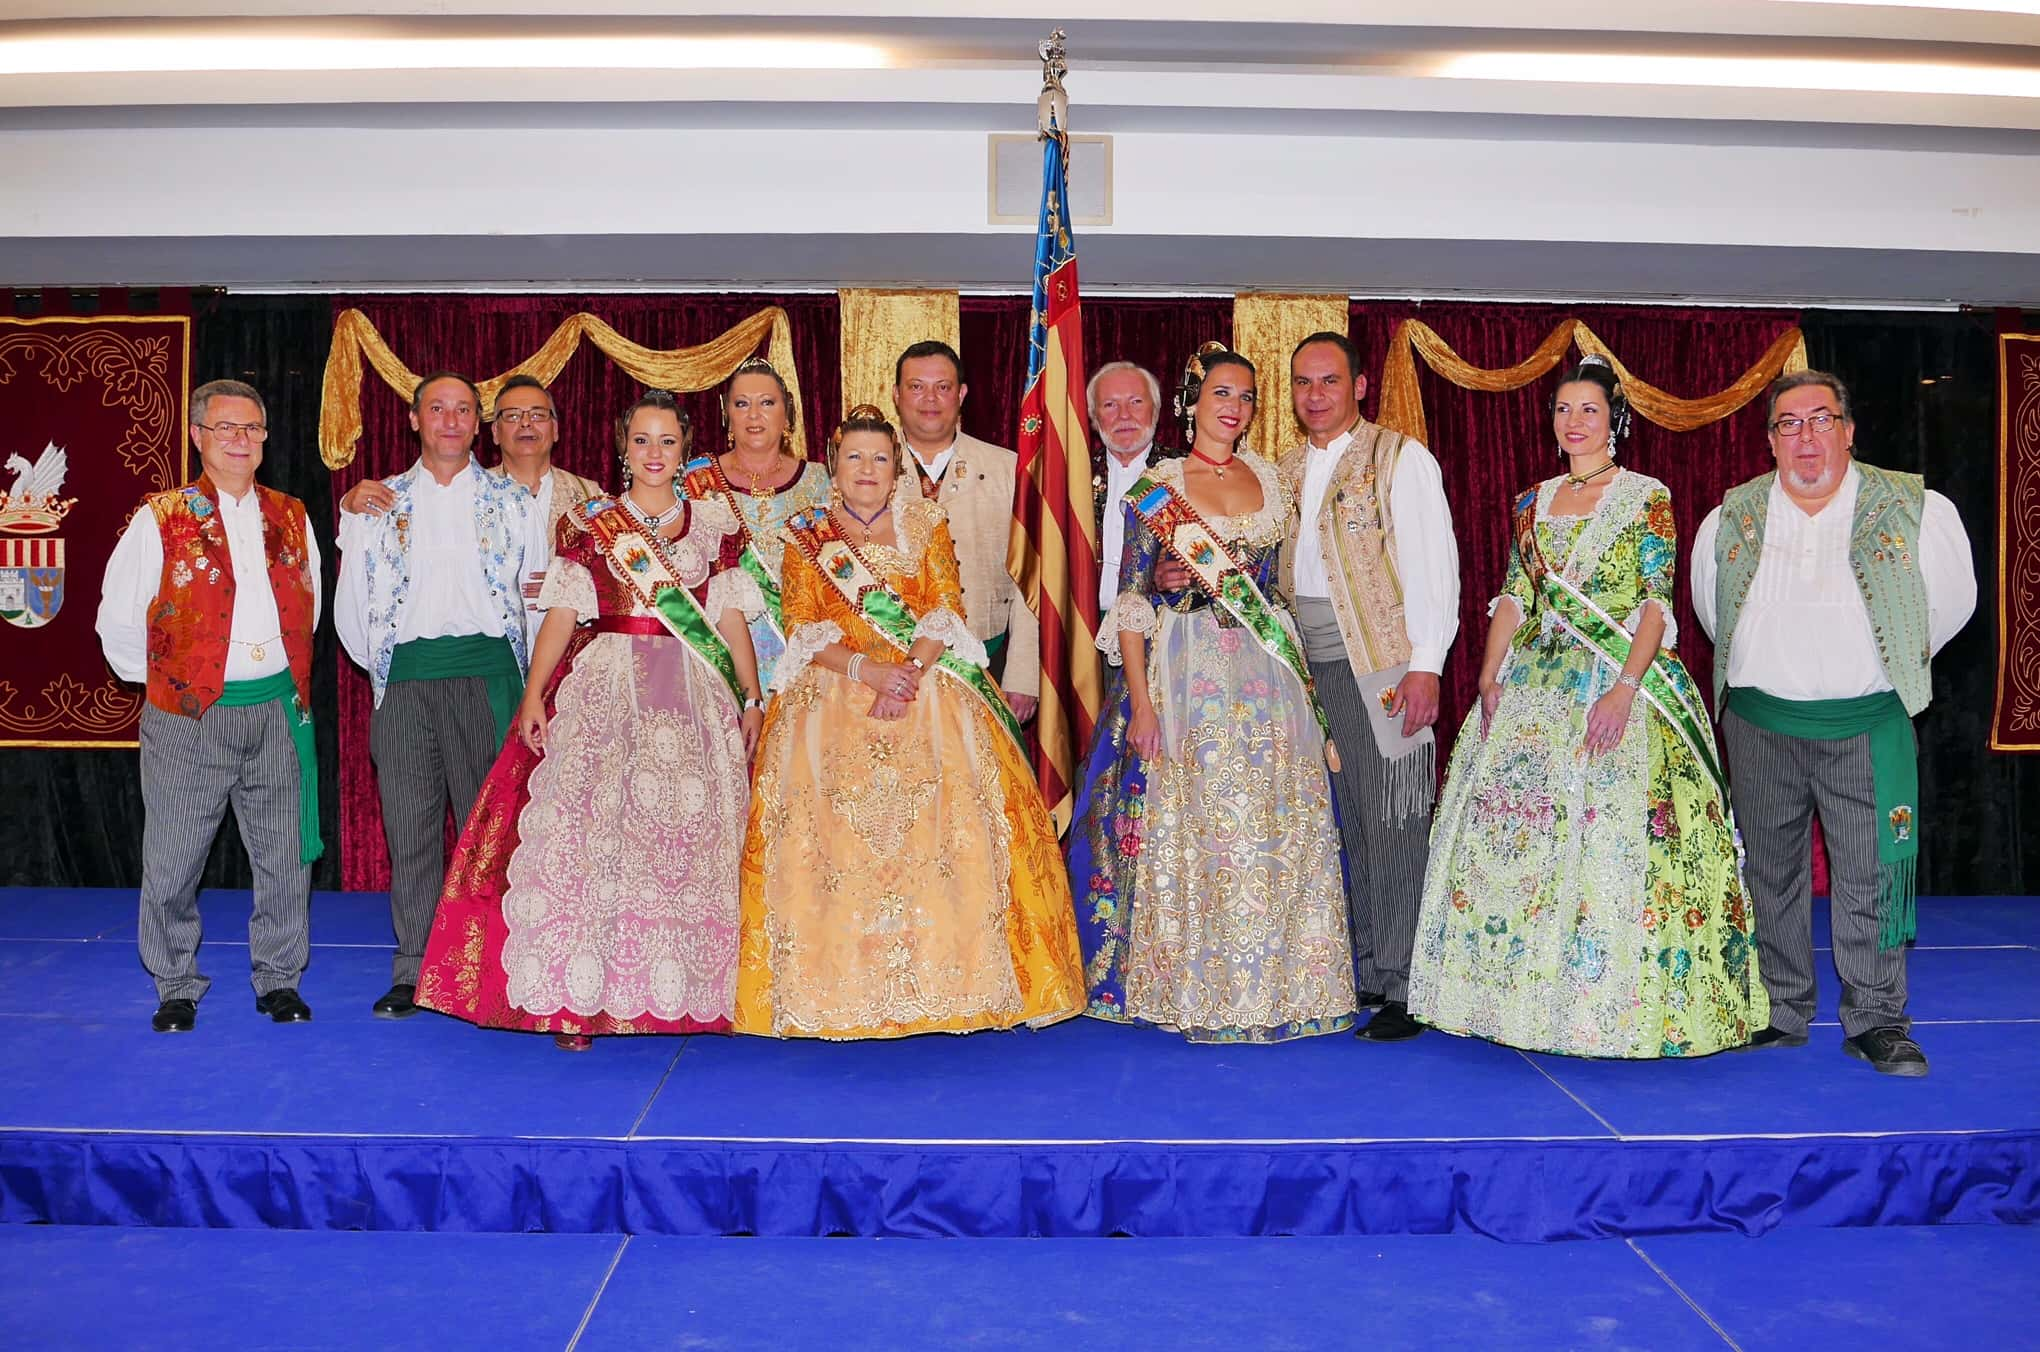 The Gala, Alboraya Fallera brings together all the major fallers of the municipality 1